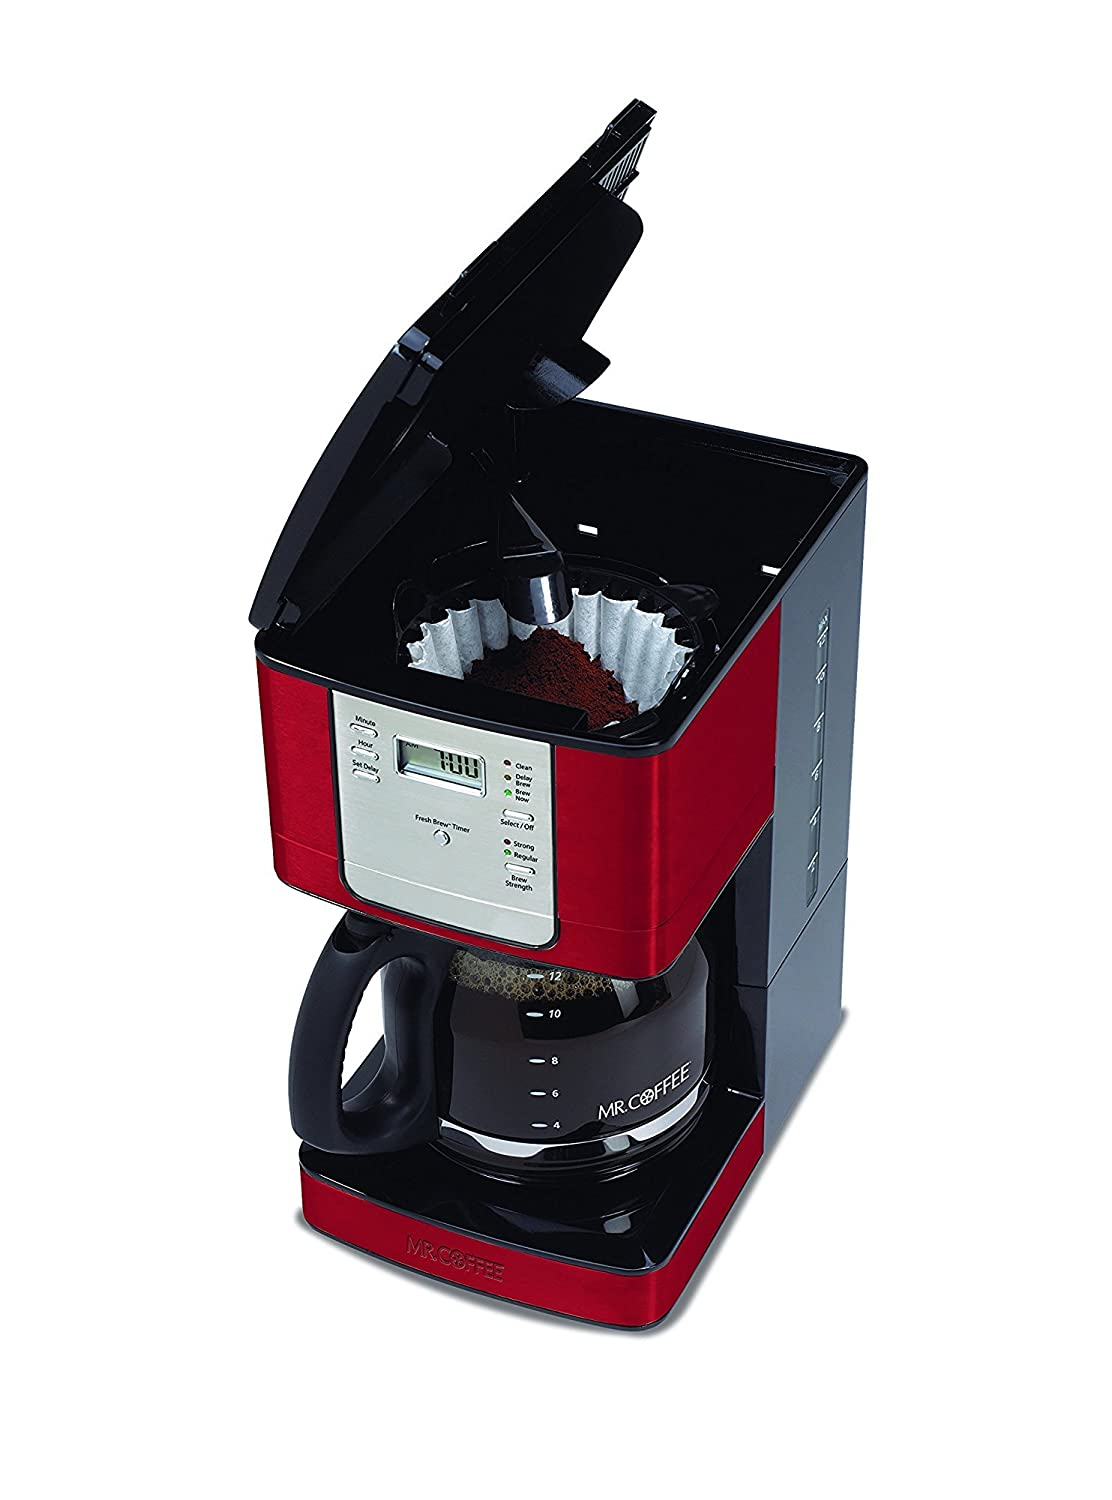 Amazon.com: Mr. Coffee JWX36-RB Advanced Brew 12-Cup Programmable Coffee  Maker, Red: Drip Coffeemakers: Kitchen & Dining